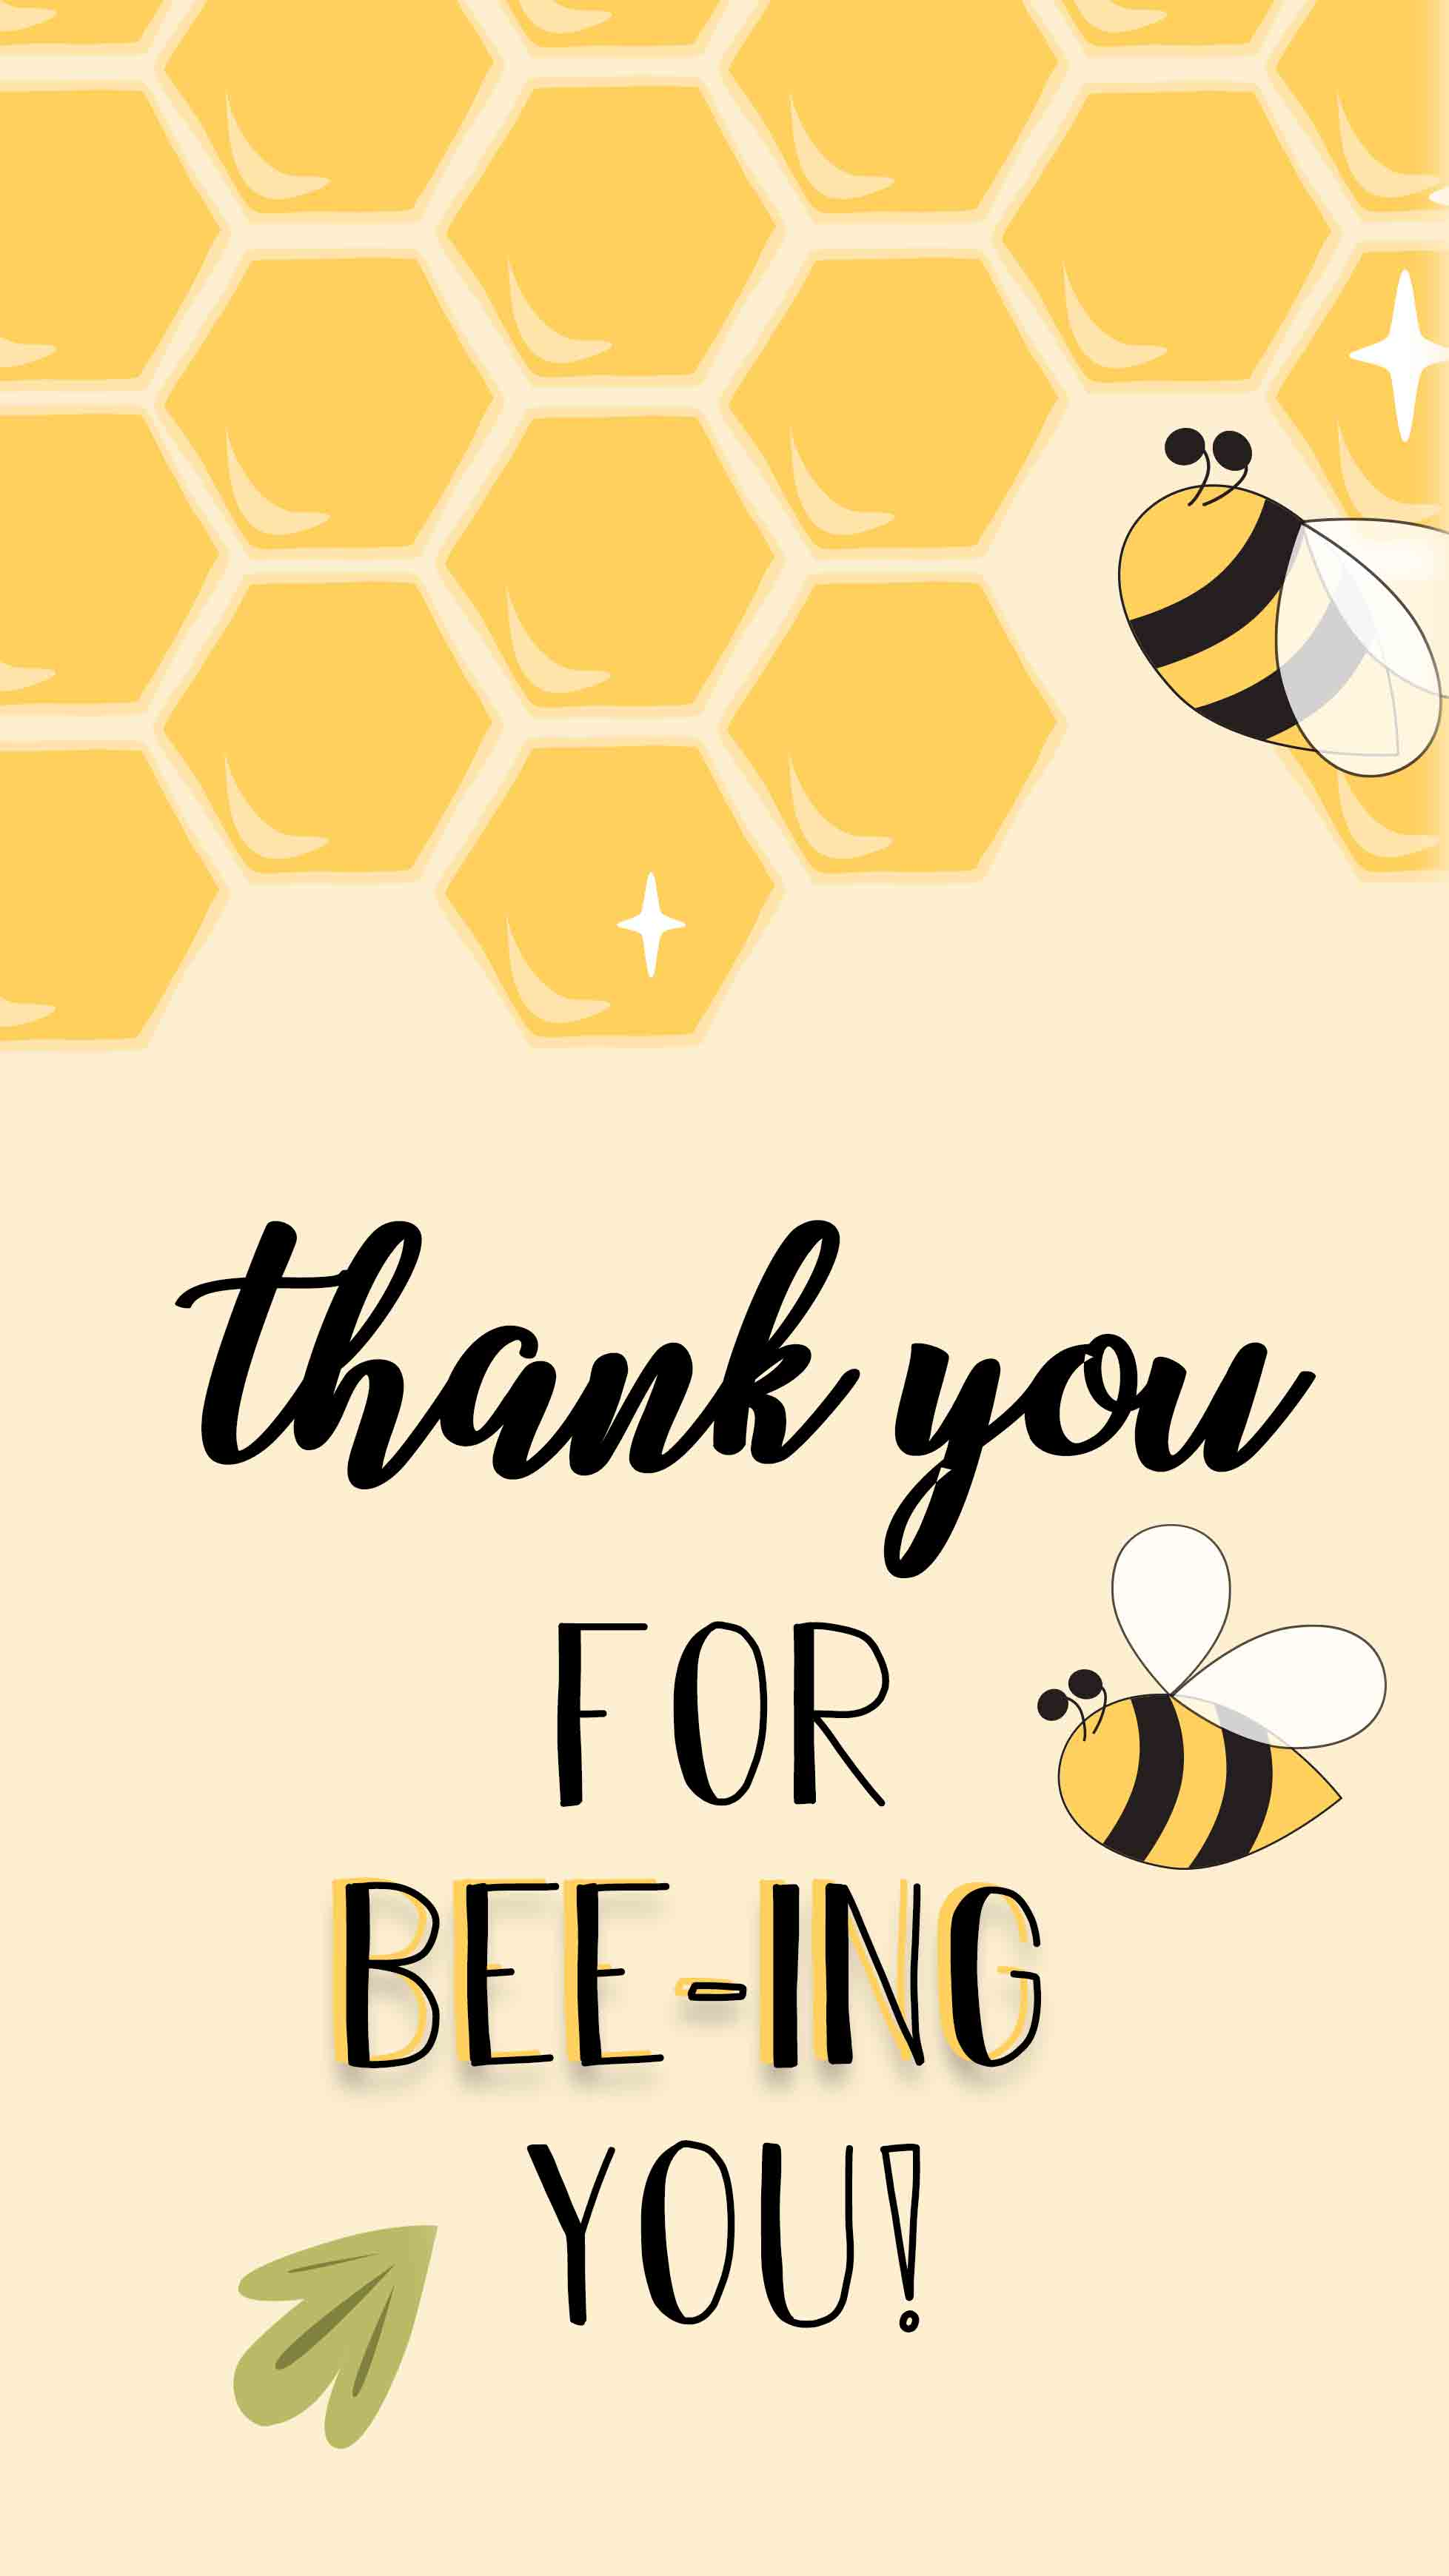 Beeing You